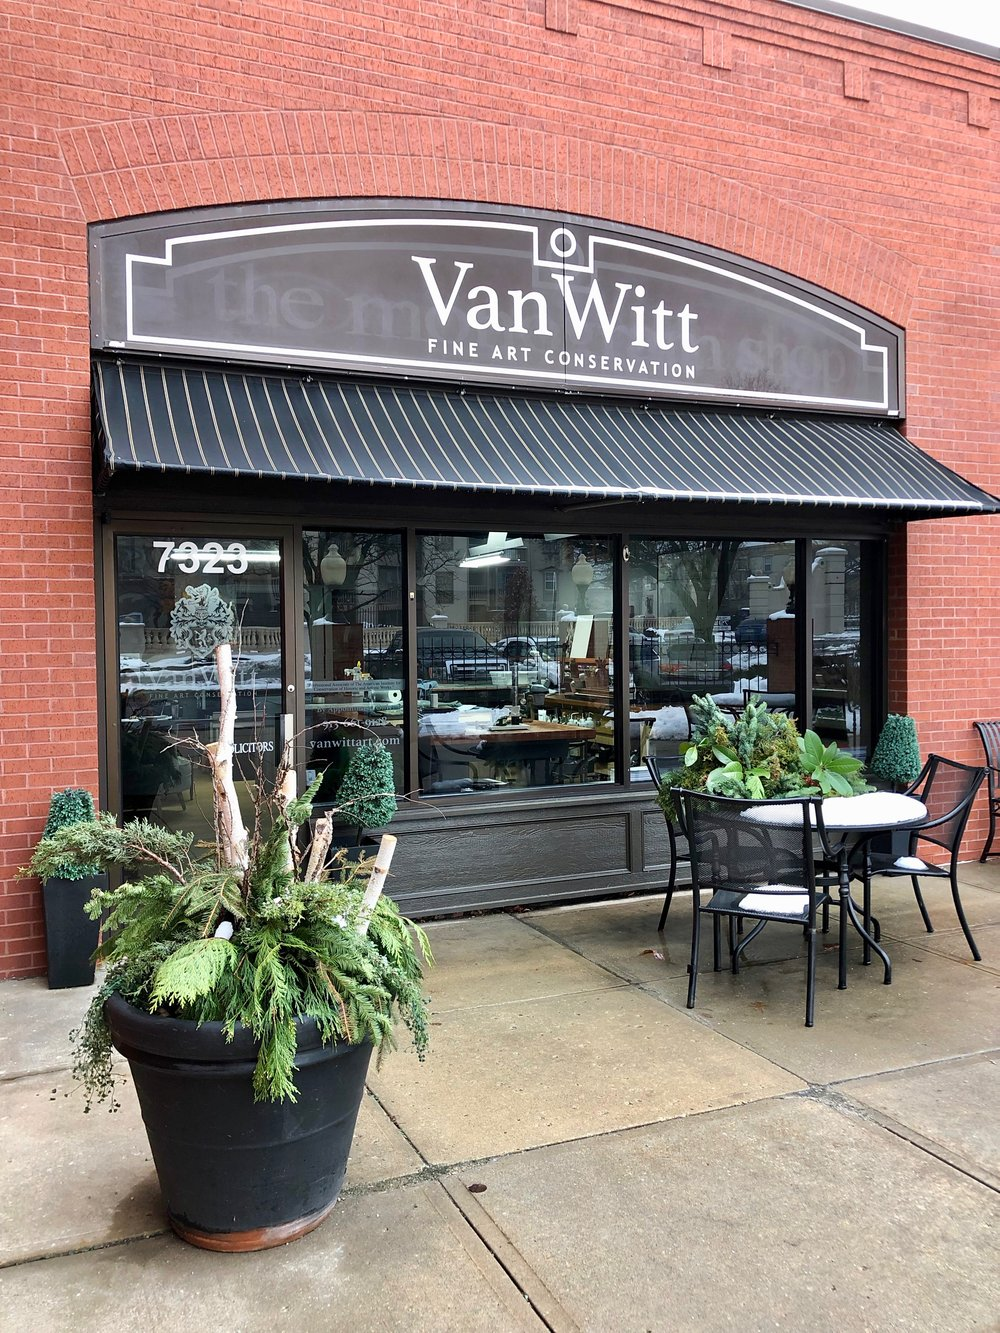 The Van Witt Fine Art Studio is located in Overland Park, Kansas.